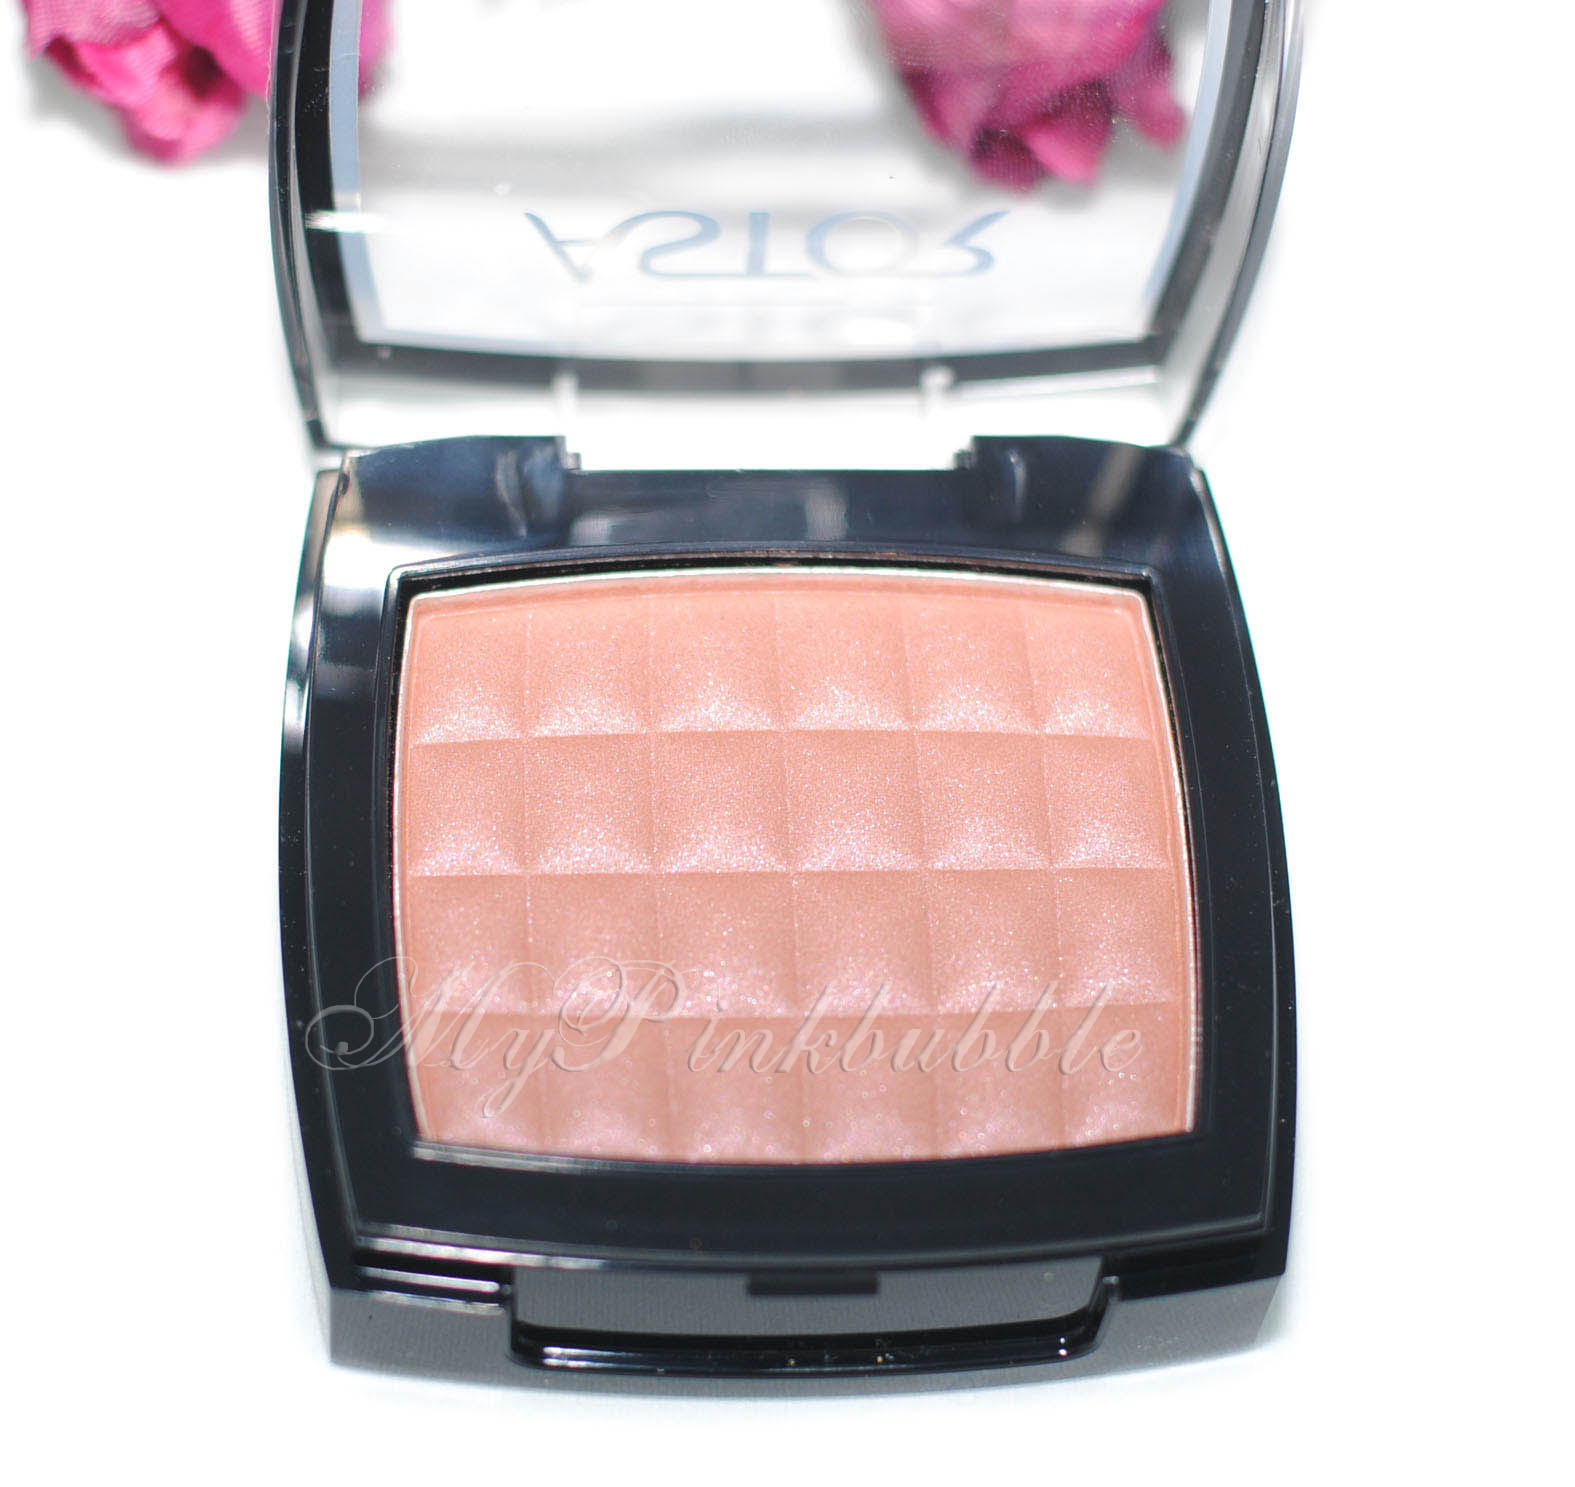 Astor colorete skin match blush 006 punchy pink